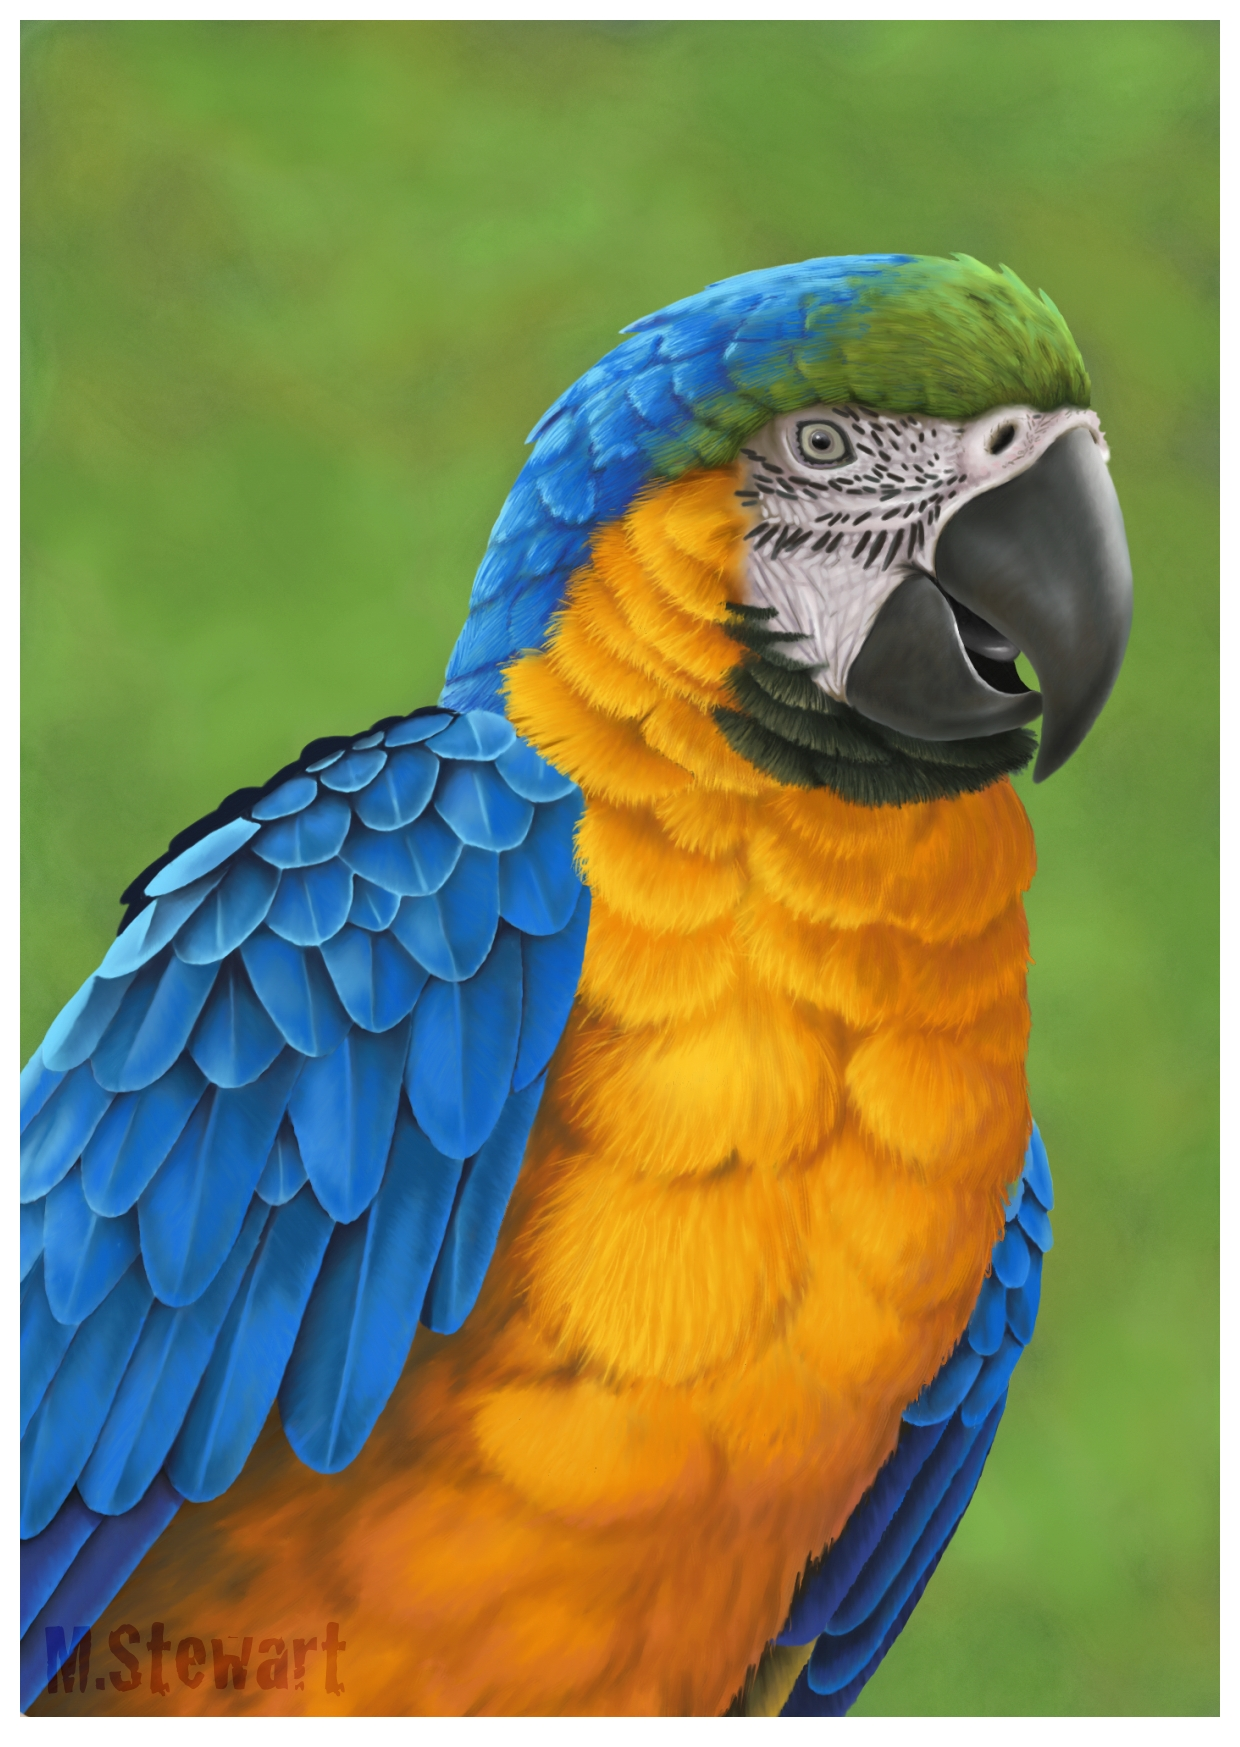 Blue and yellow macaw by markstewart